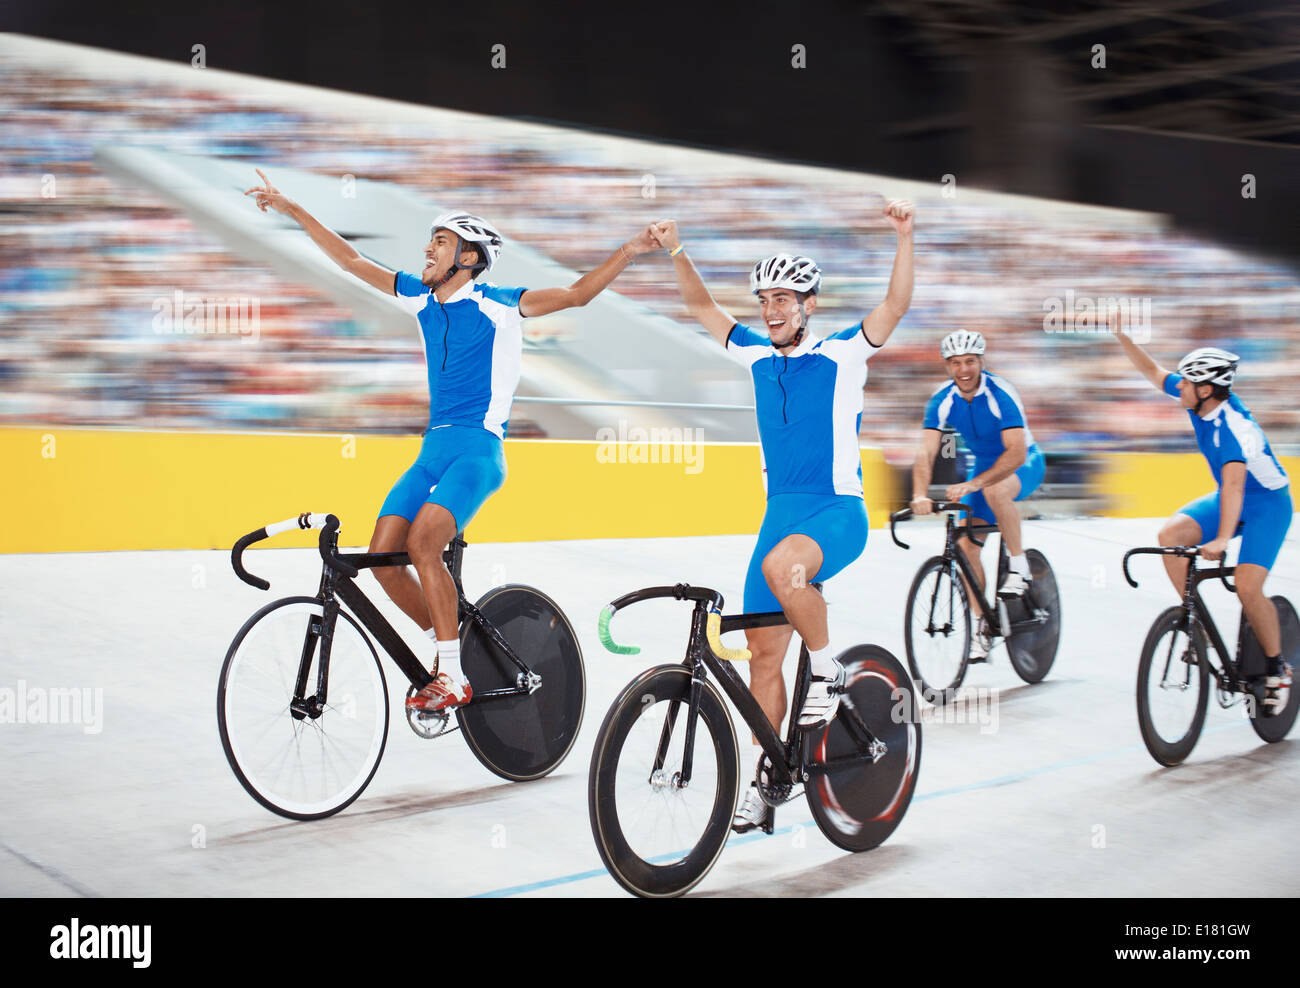 Track cycling team celebrating in velodrome - Stock Image